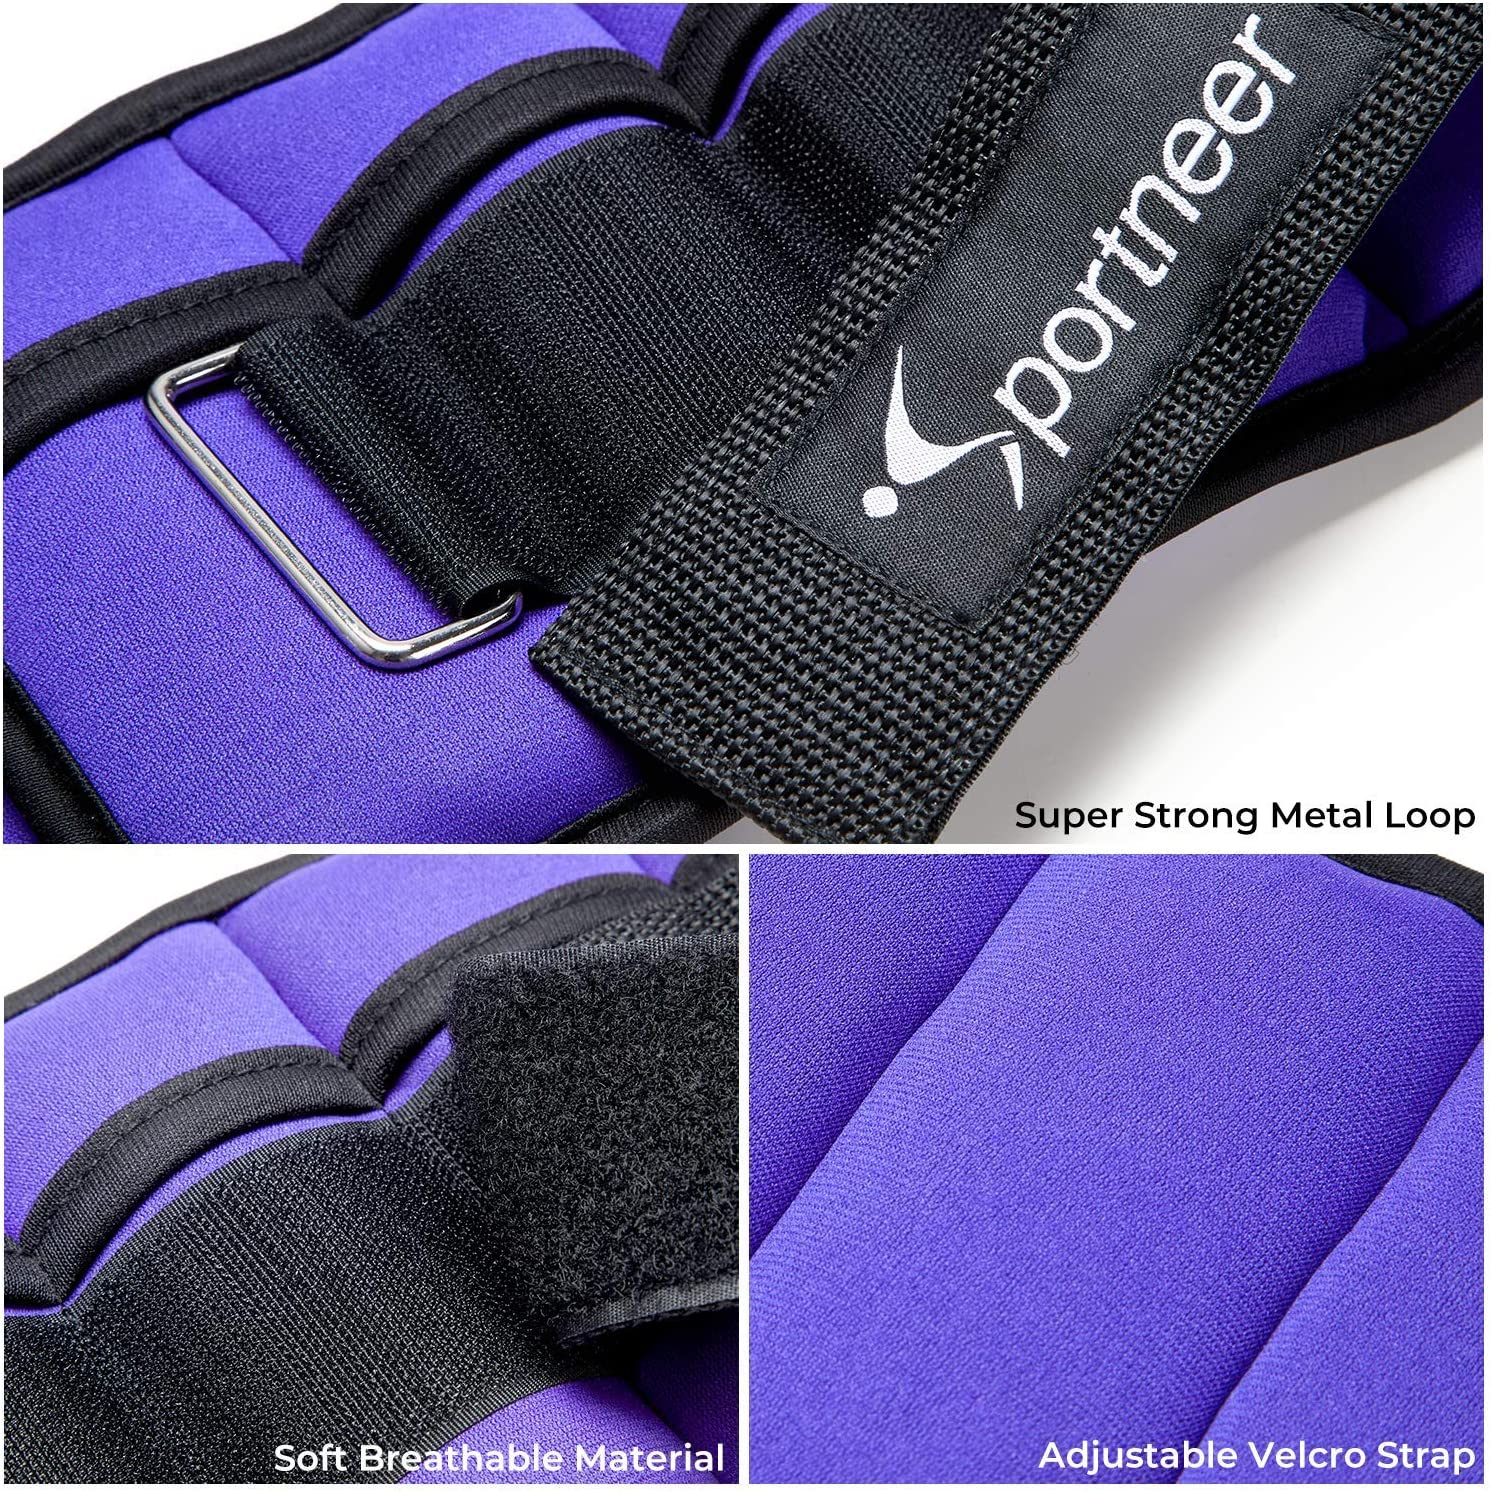 1-5 lbs Each Pack Jogging Workout Sportneer Ankle Weights Adjustable Weights Wrist Arm Leg Weight Straps for Fitness 2 Pack 2-10 lbs Walking Max 5 LBS